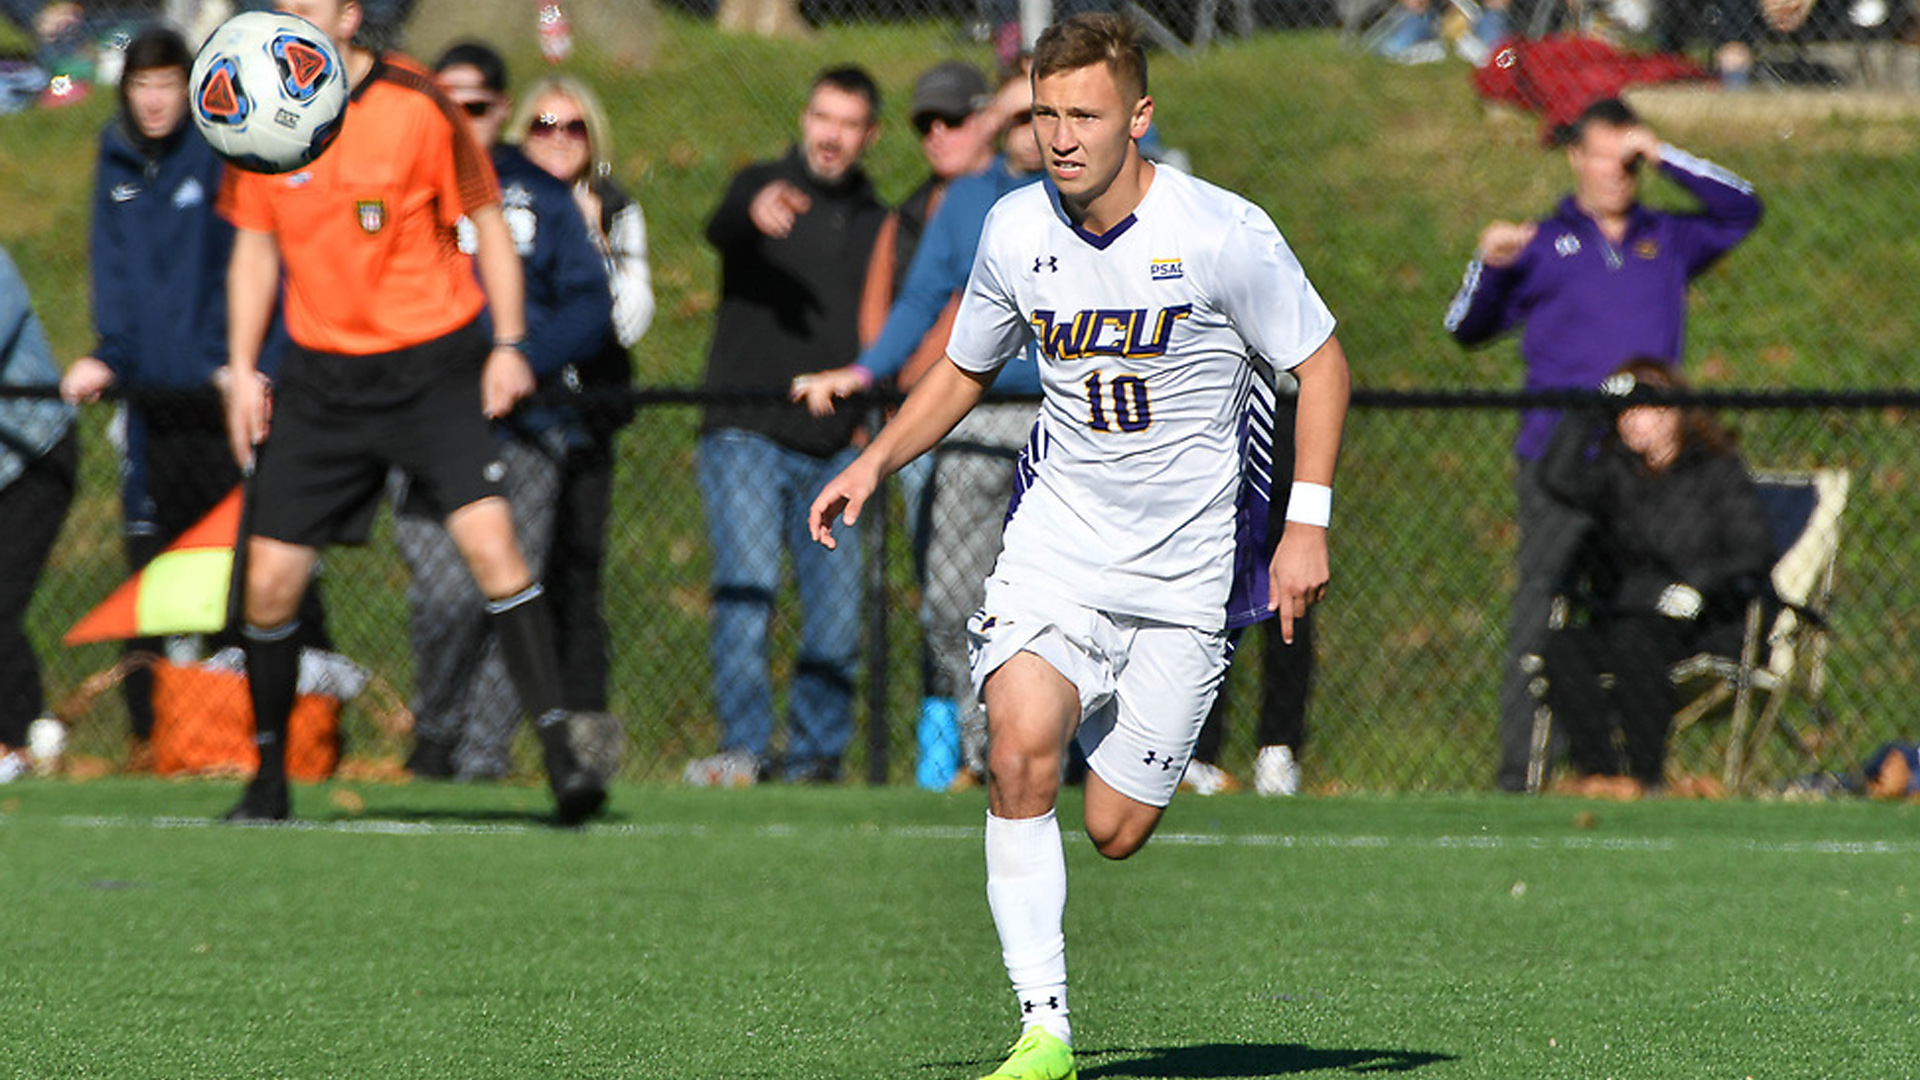 WCU Soccer Player Looks Forward to His Return to the Pitch